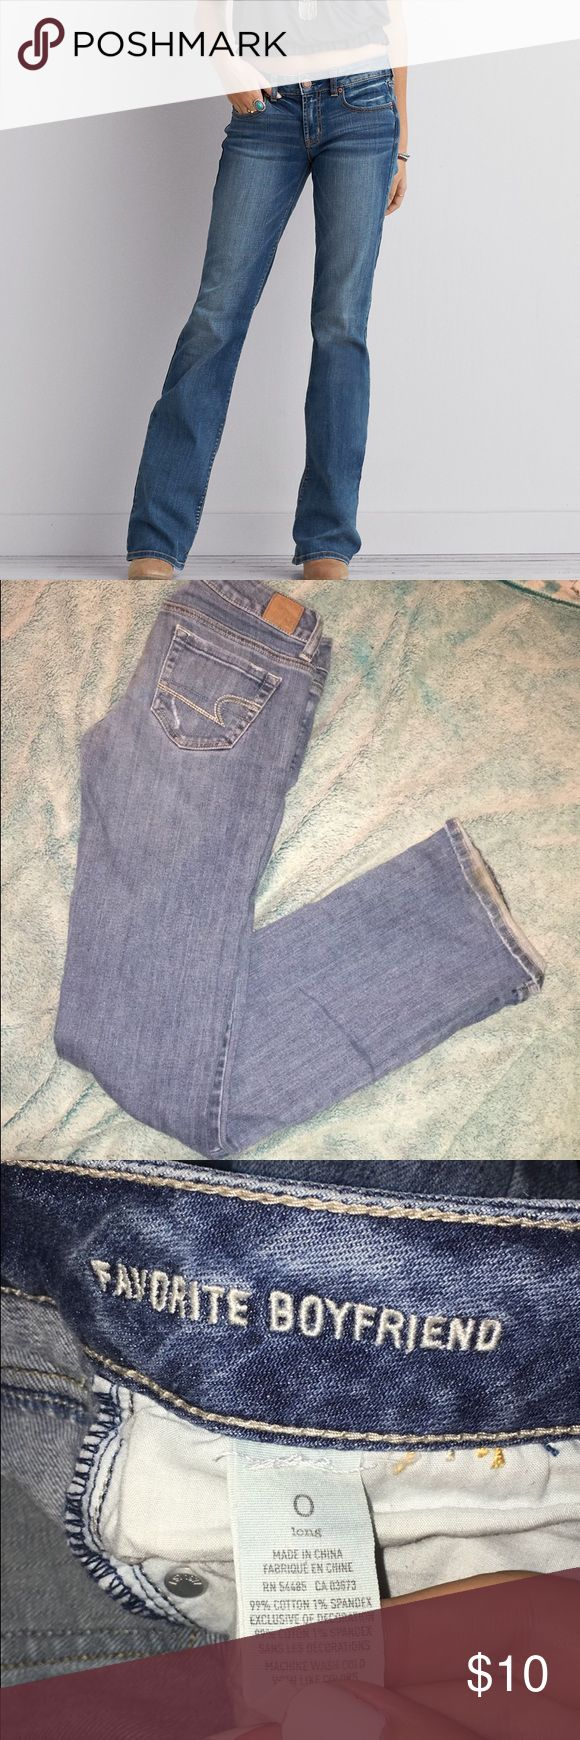 AE Favorite Boyfriend Jeans 💕 size 0 long, good condition, light-washed. favorite boyfriend style, meaning that they're a bit looser than most AE jeans(: American Eagle Outfitters Jeans Flare & Wide Leg